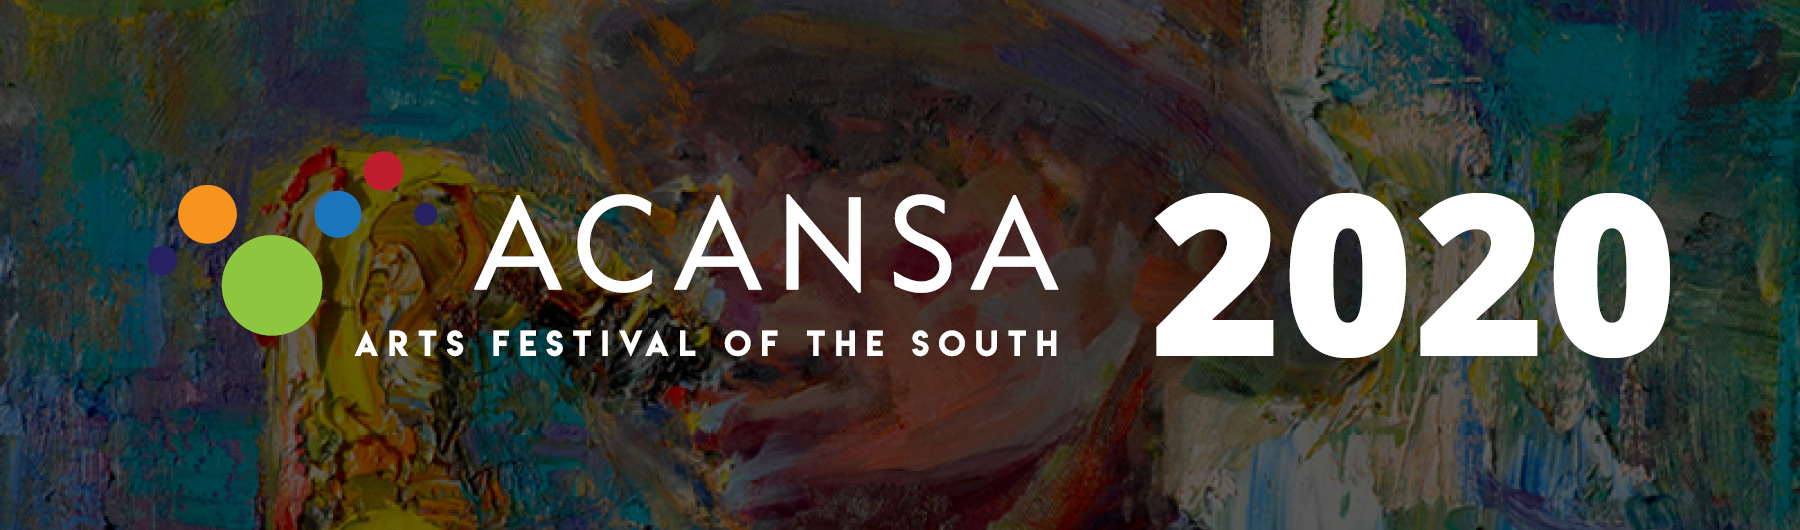 2020 ACANSA Arts Festival of the South